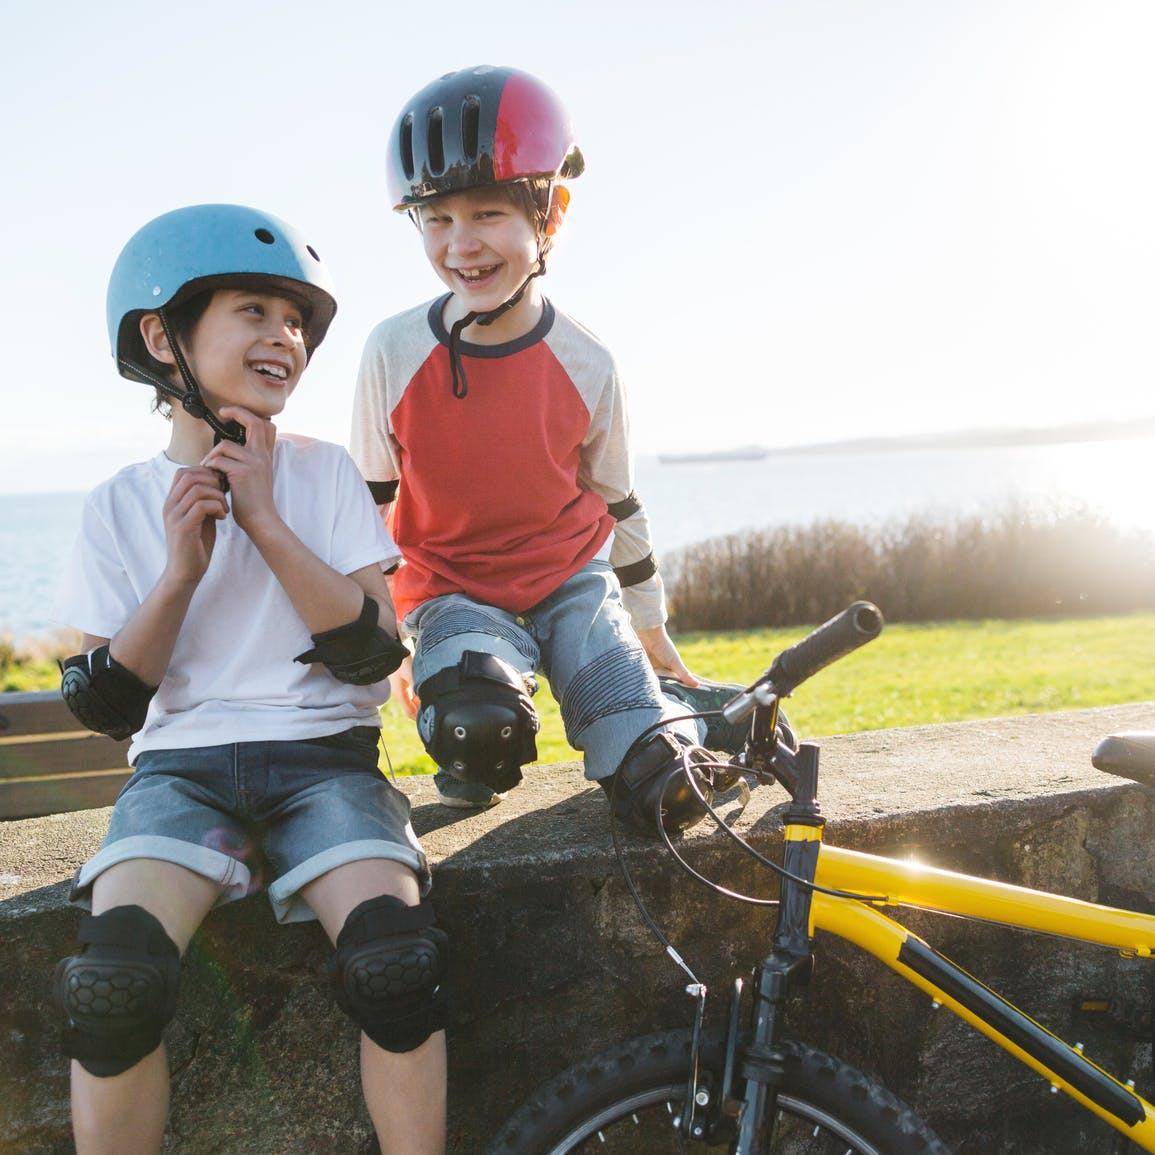 Two children wearing bicycle helmets laughing with a bicycle